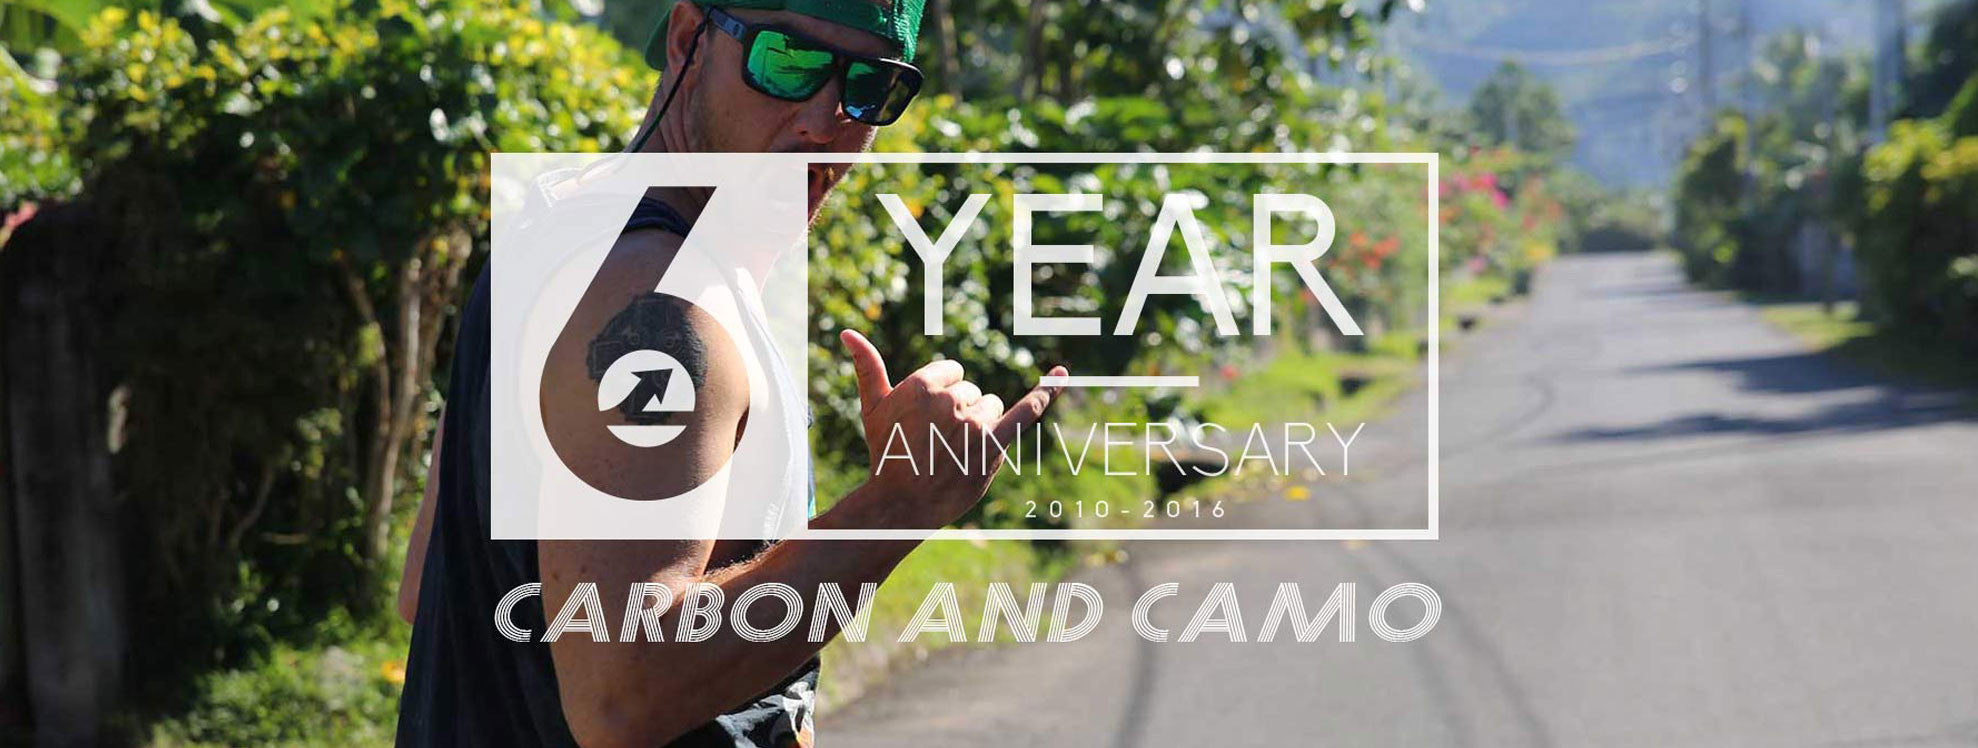 Slyde Handboards 6 Year Anniversary: Year In Review